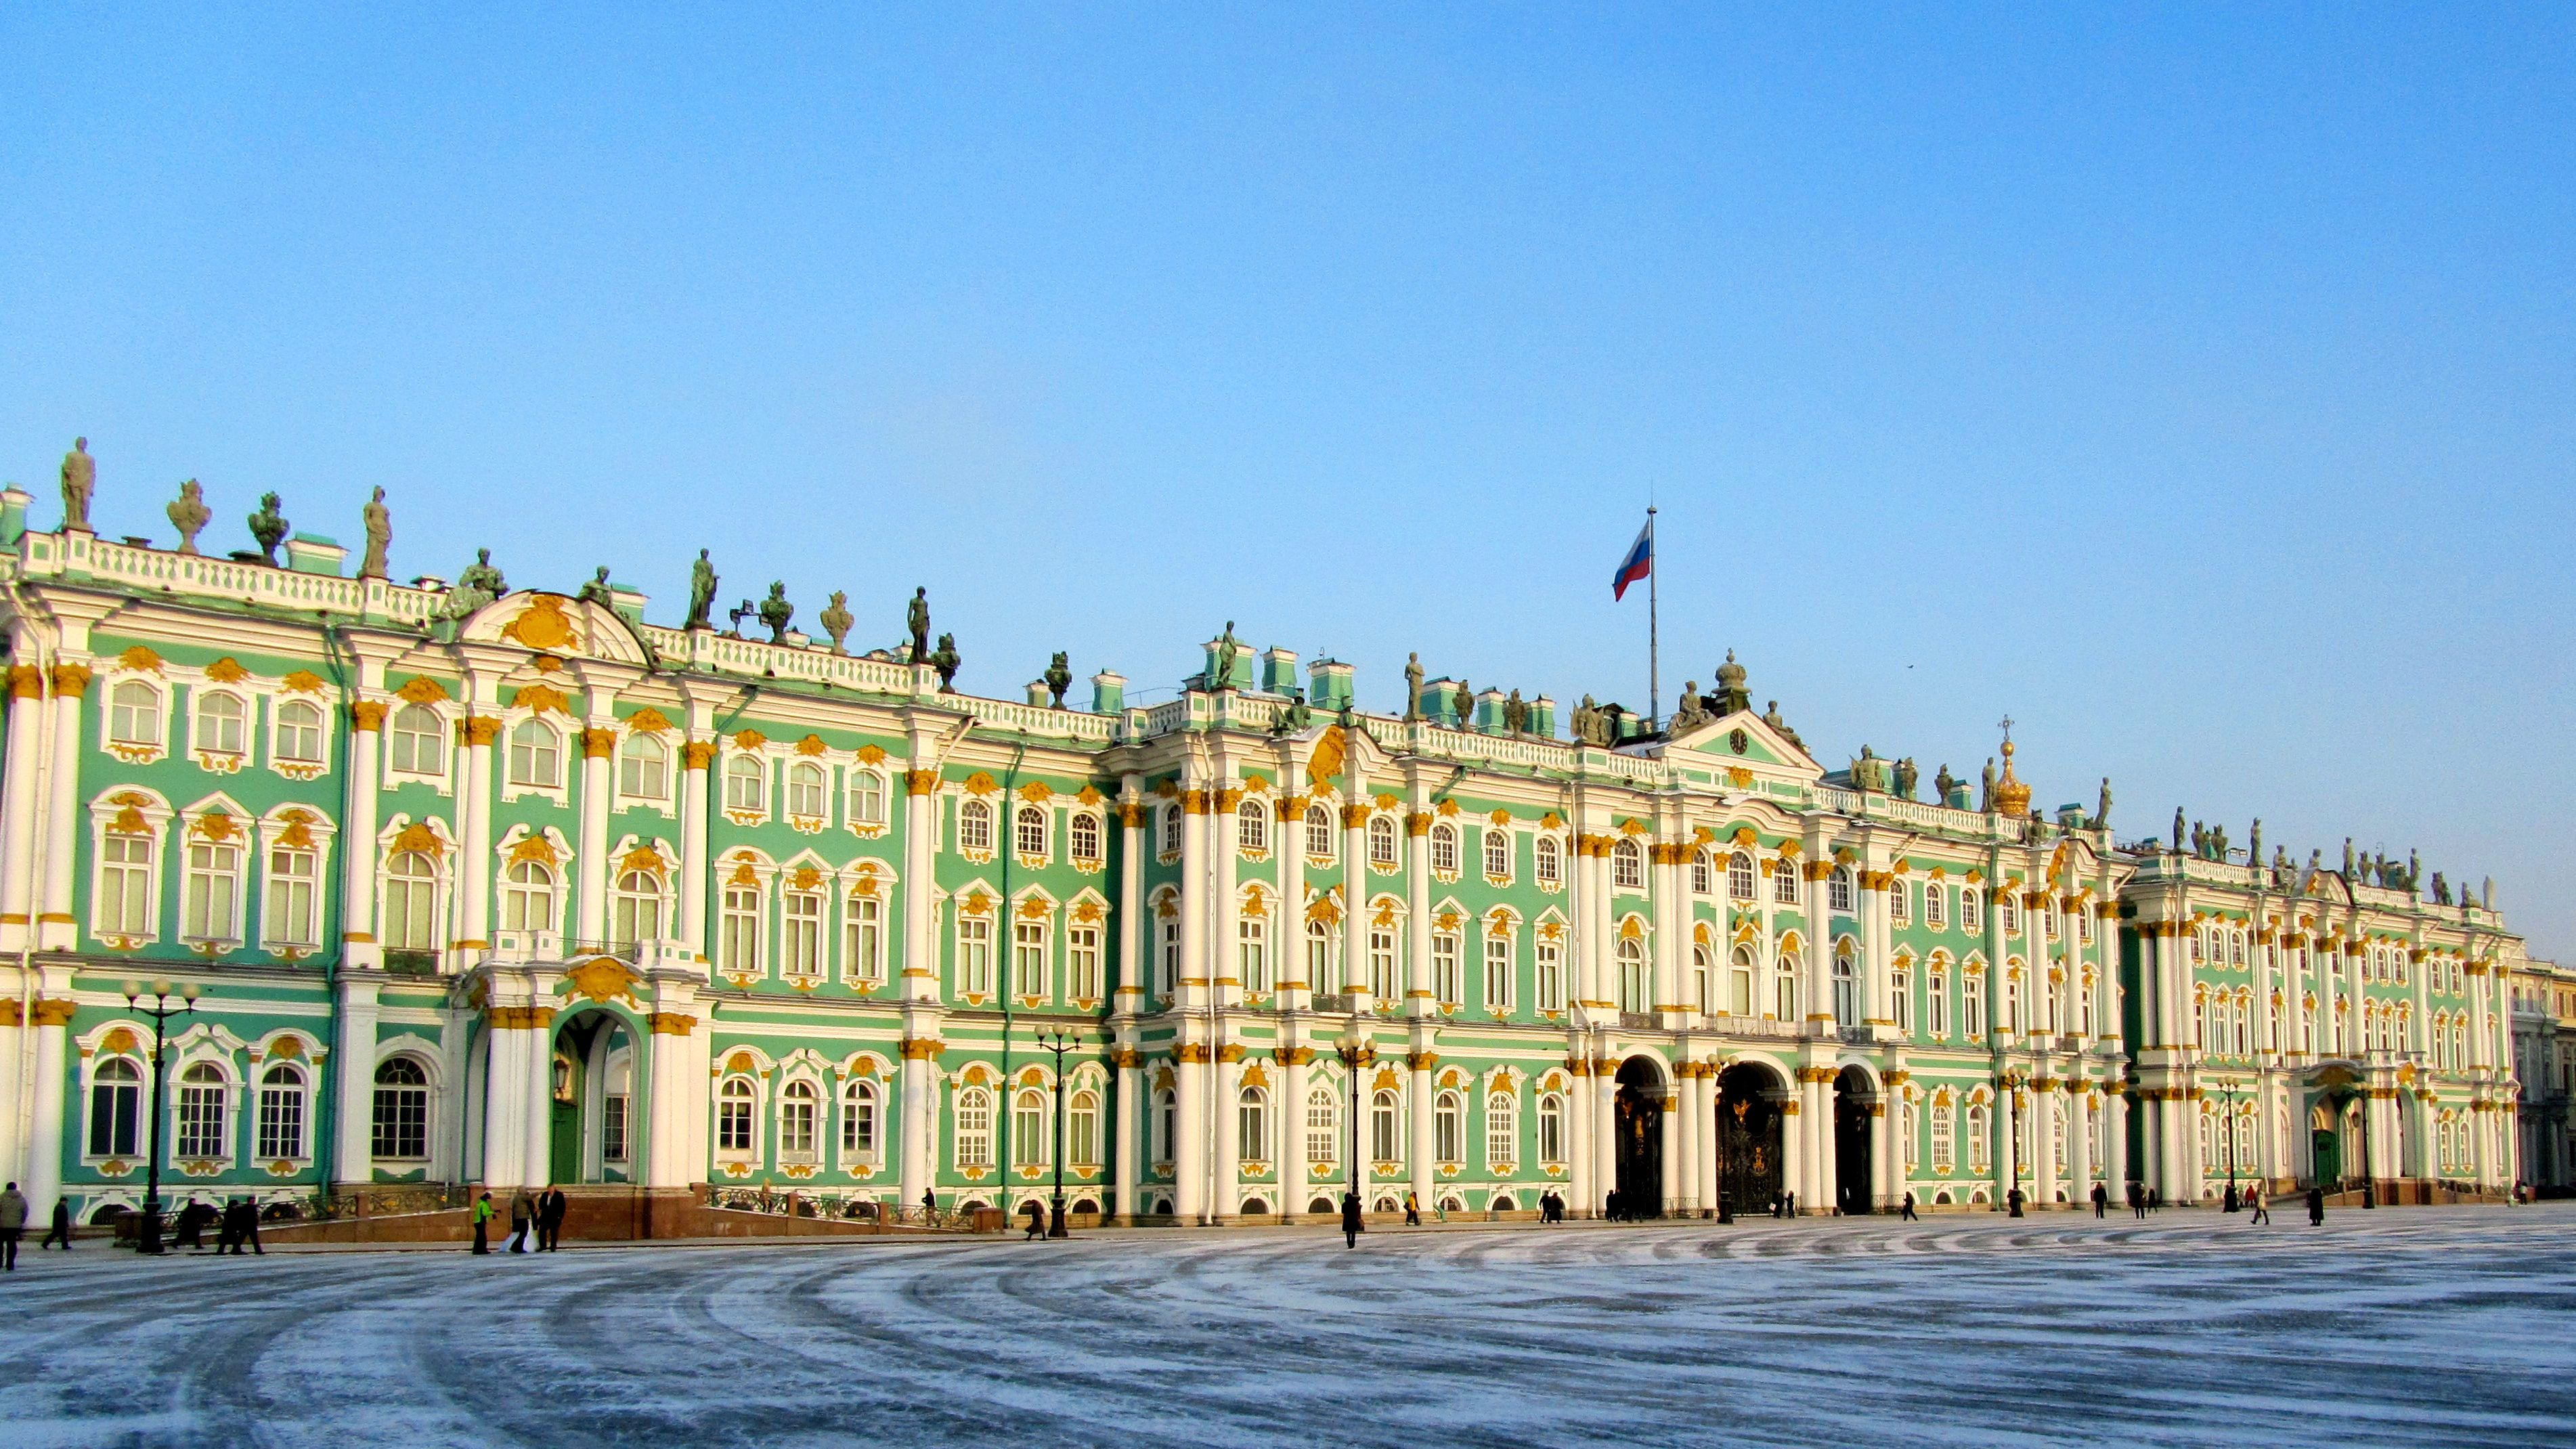 cold day outside of the Hermitage Museum in Saint Petersburg